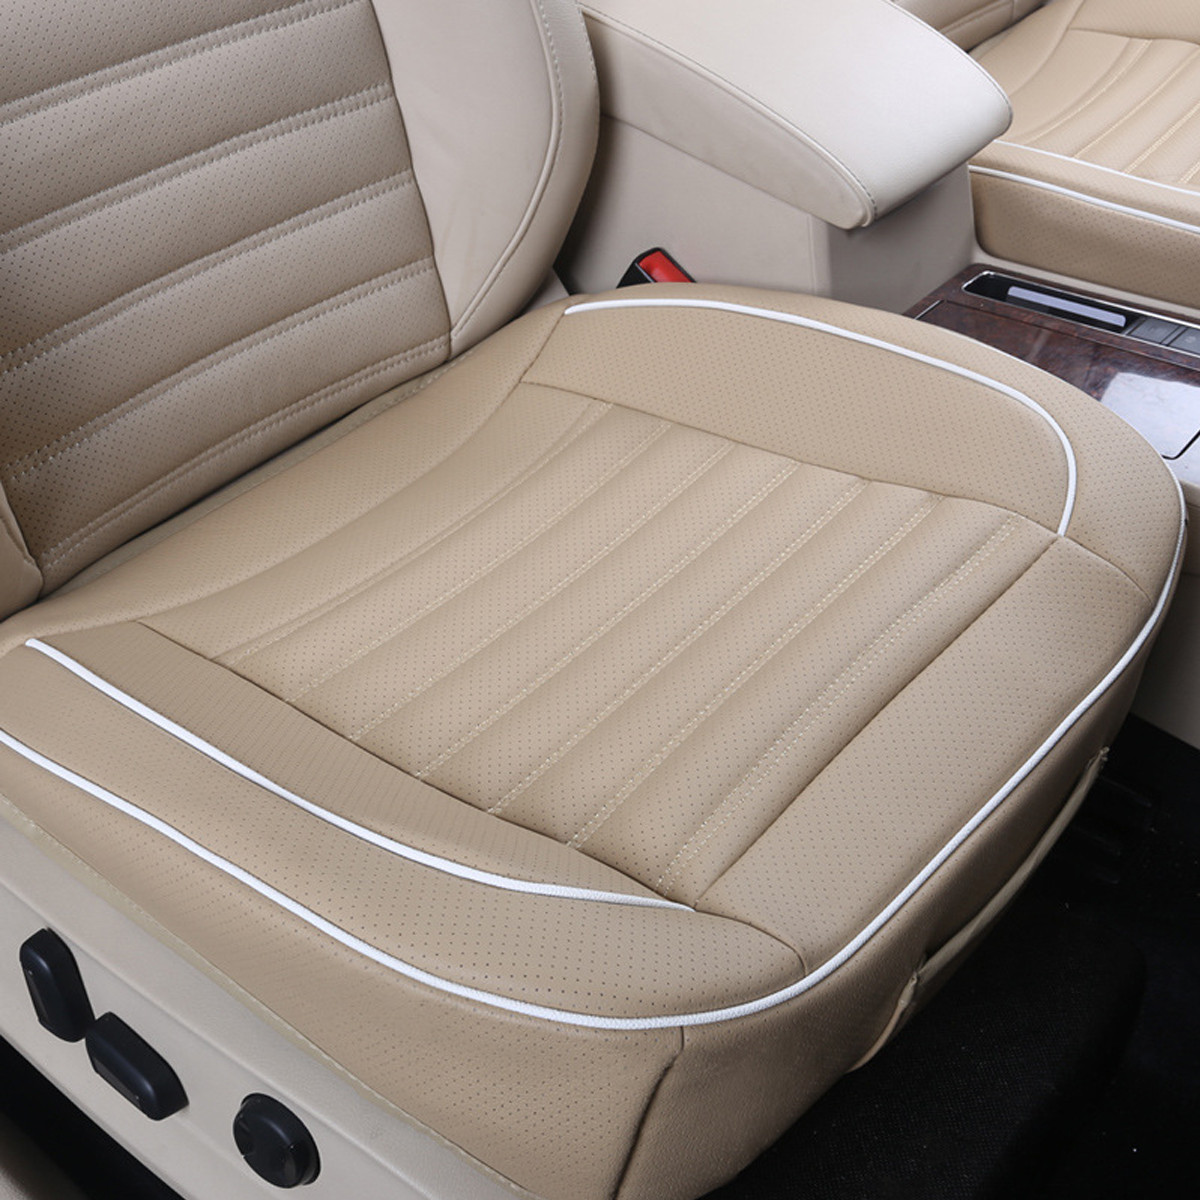 beige chair covers buy modern adirondack plans 50x50cm pu leather car cushion seat cover